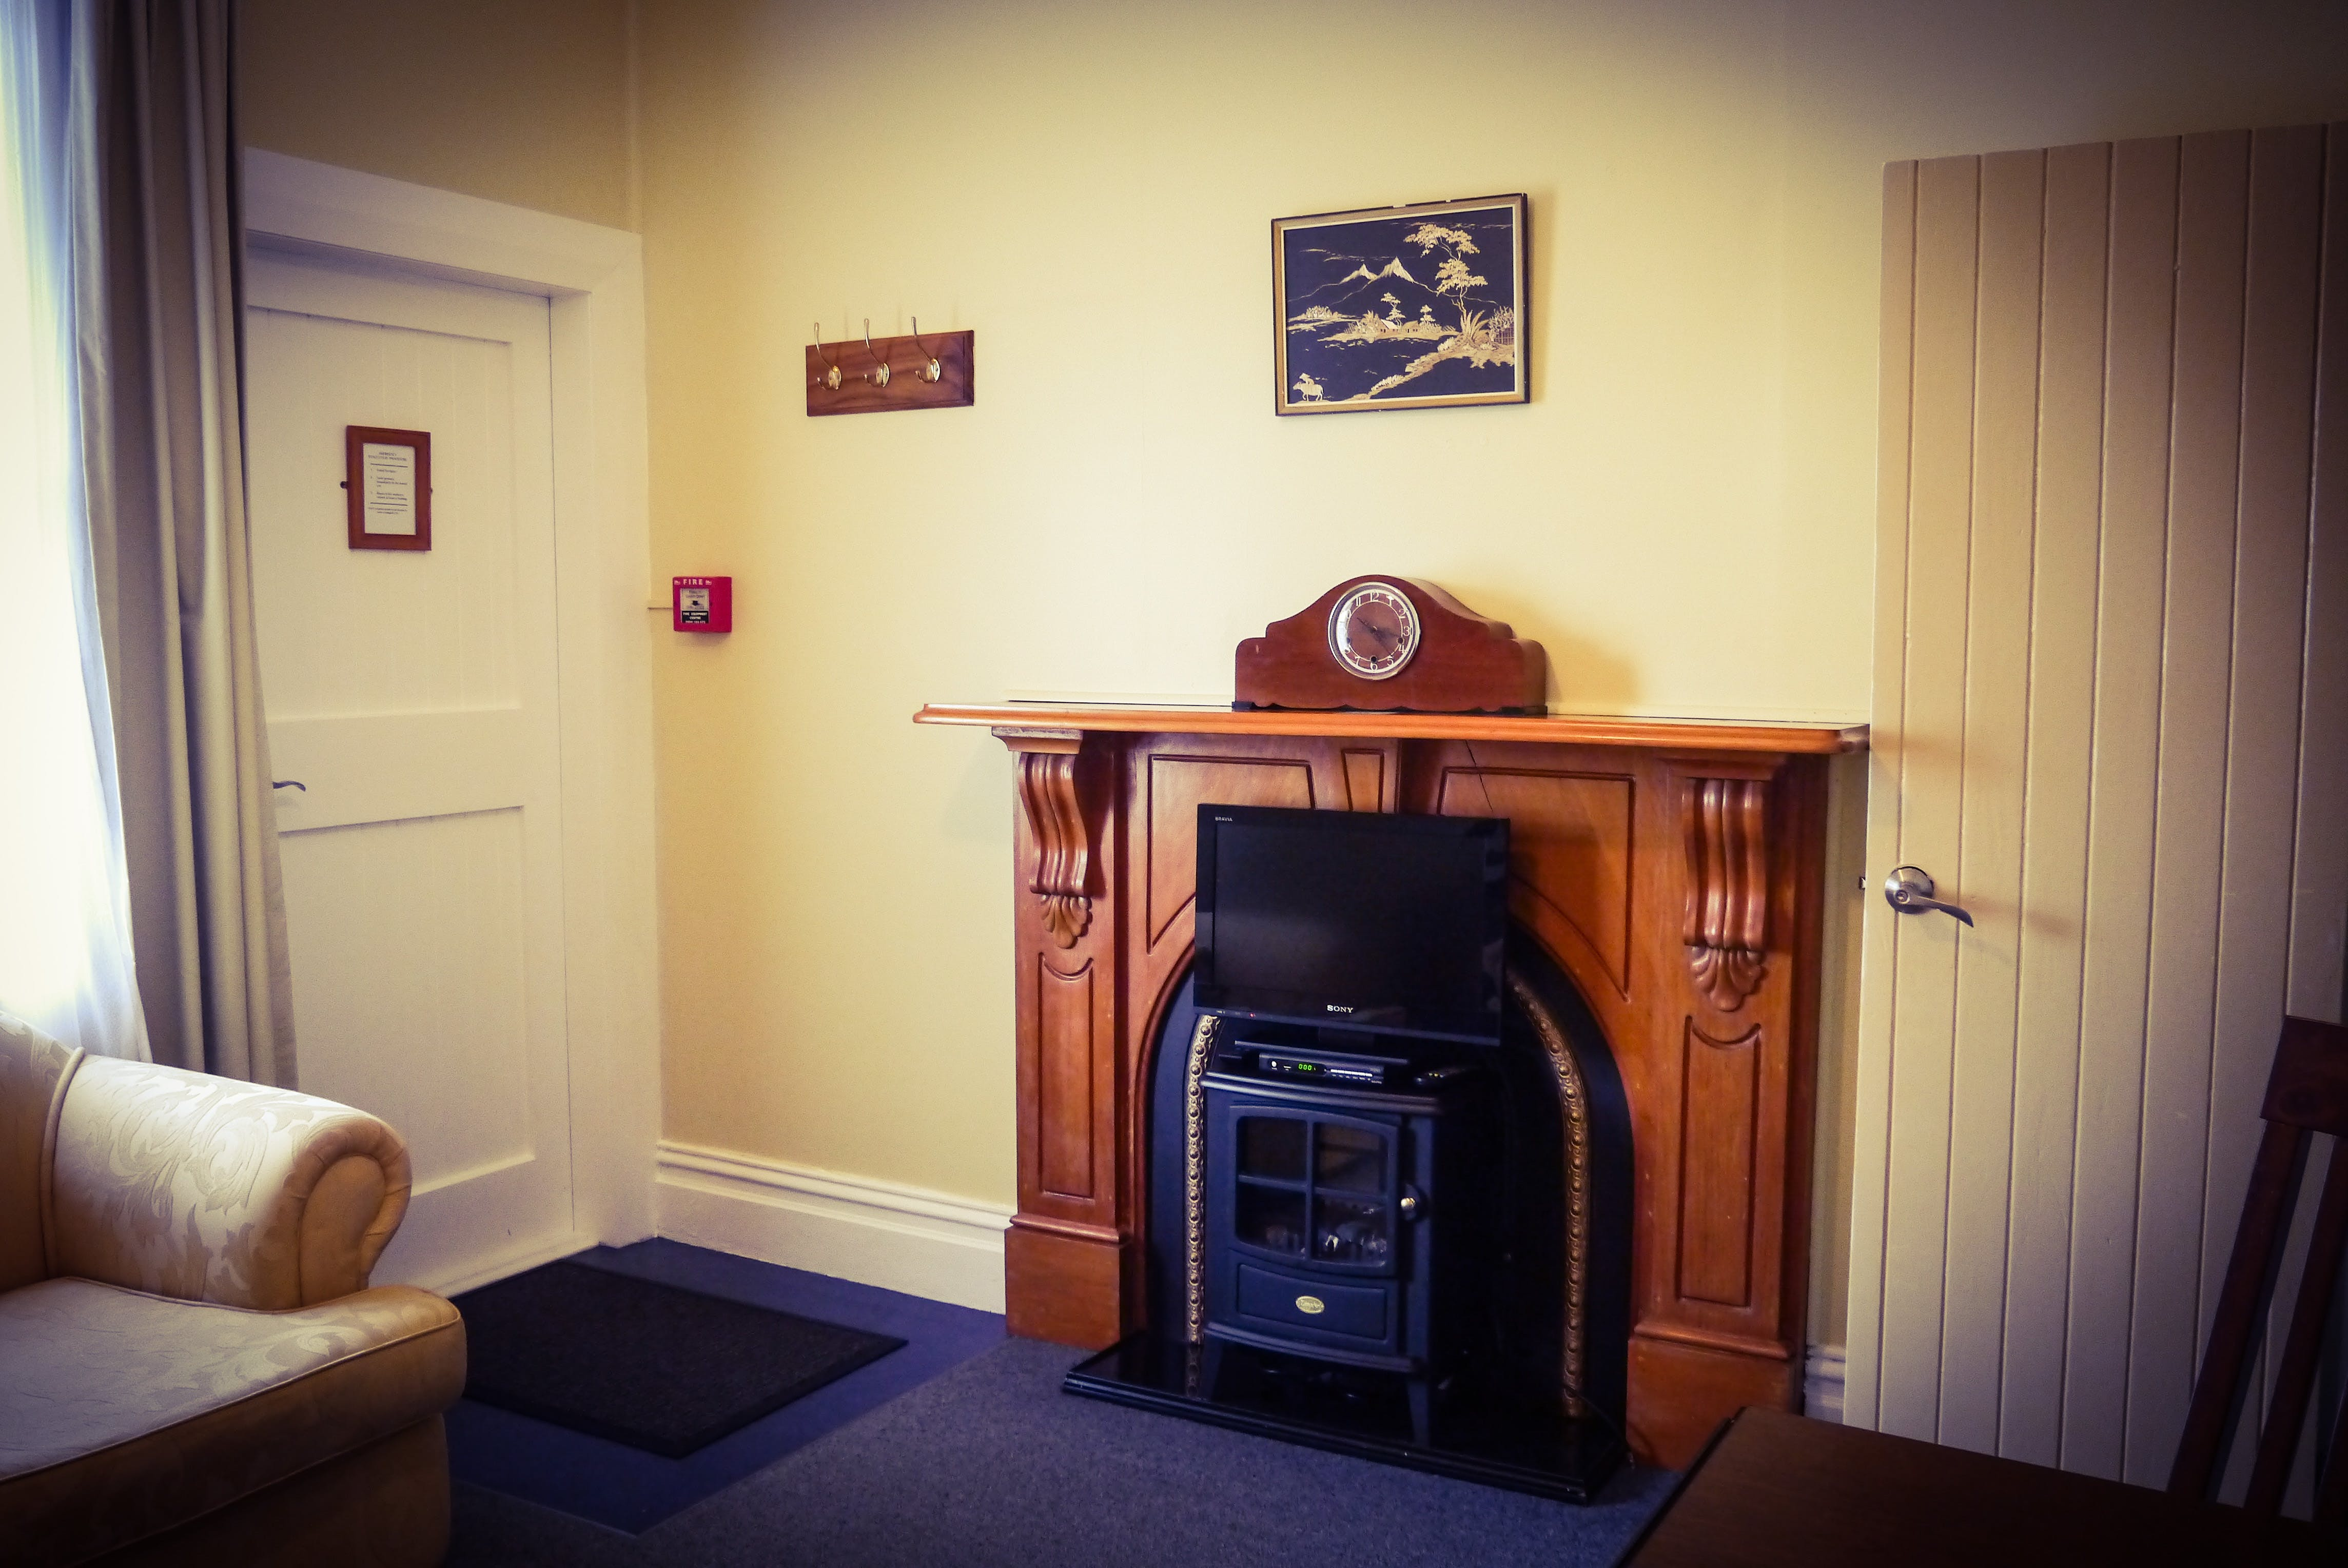 Turoa suite lounge with old style mantelpiece